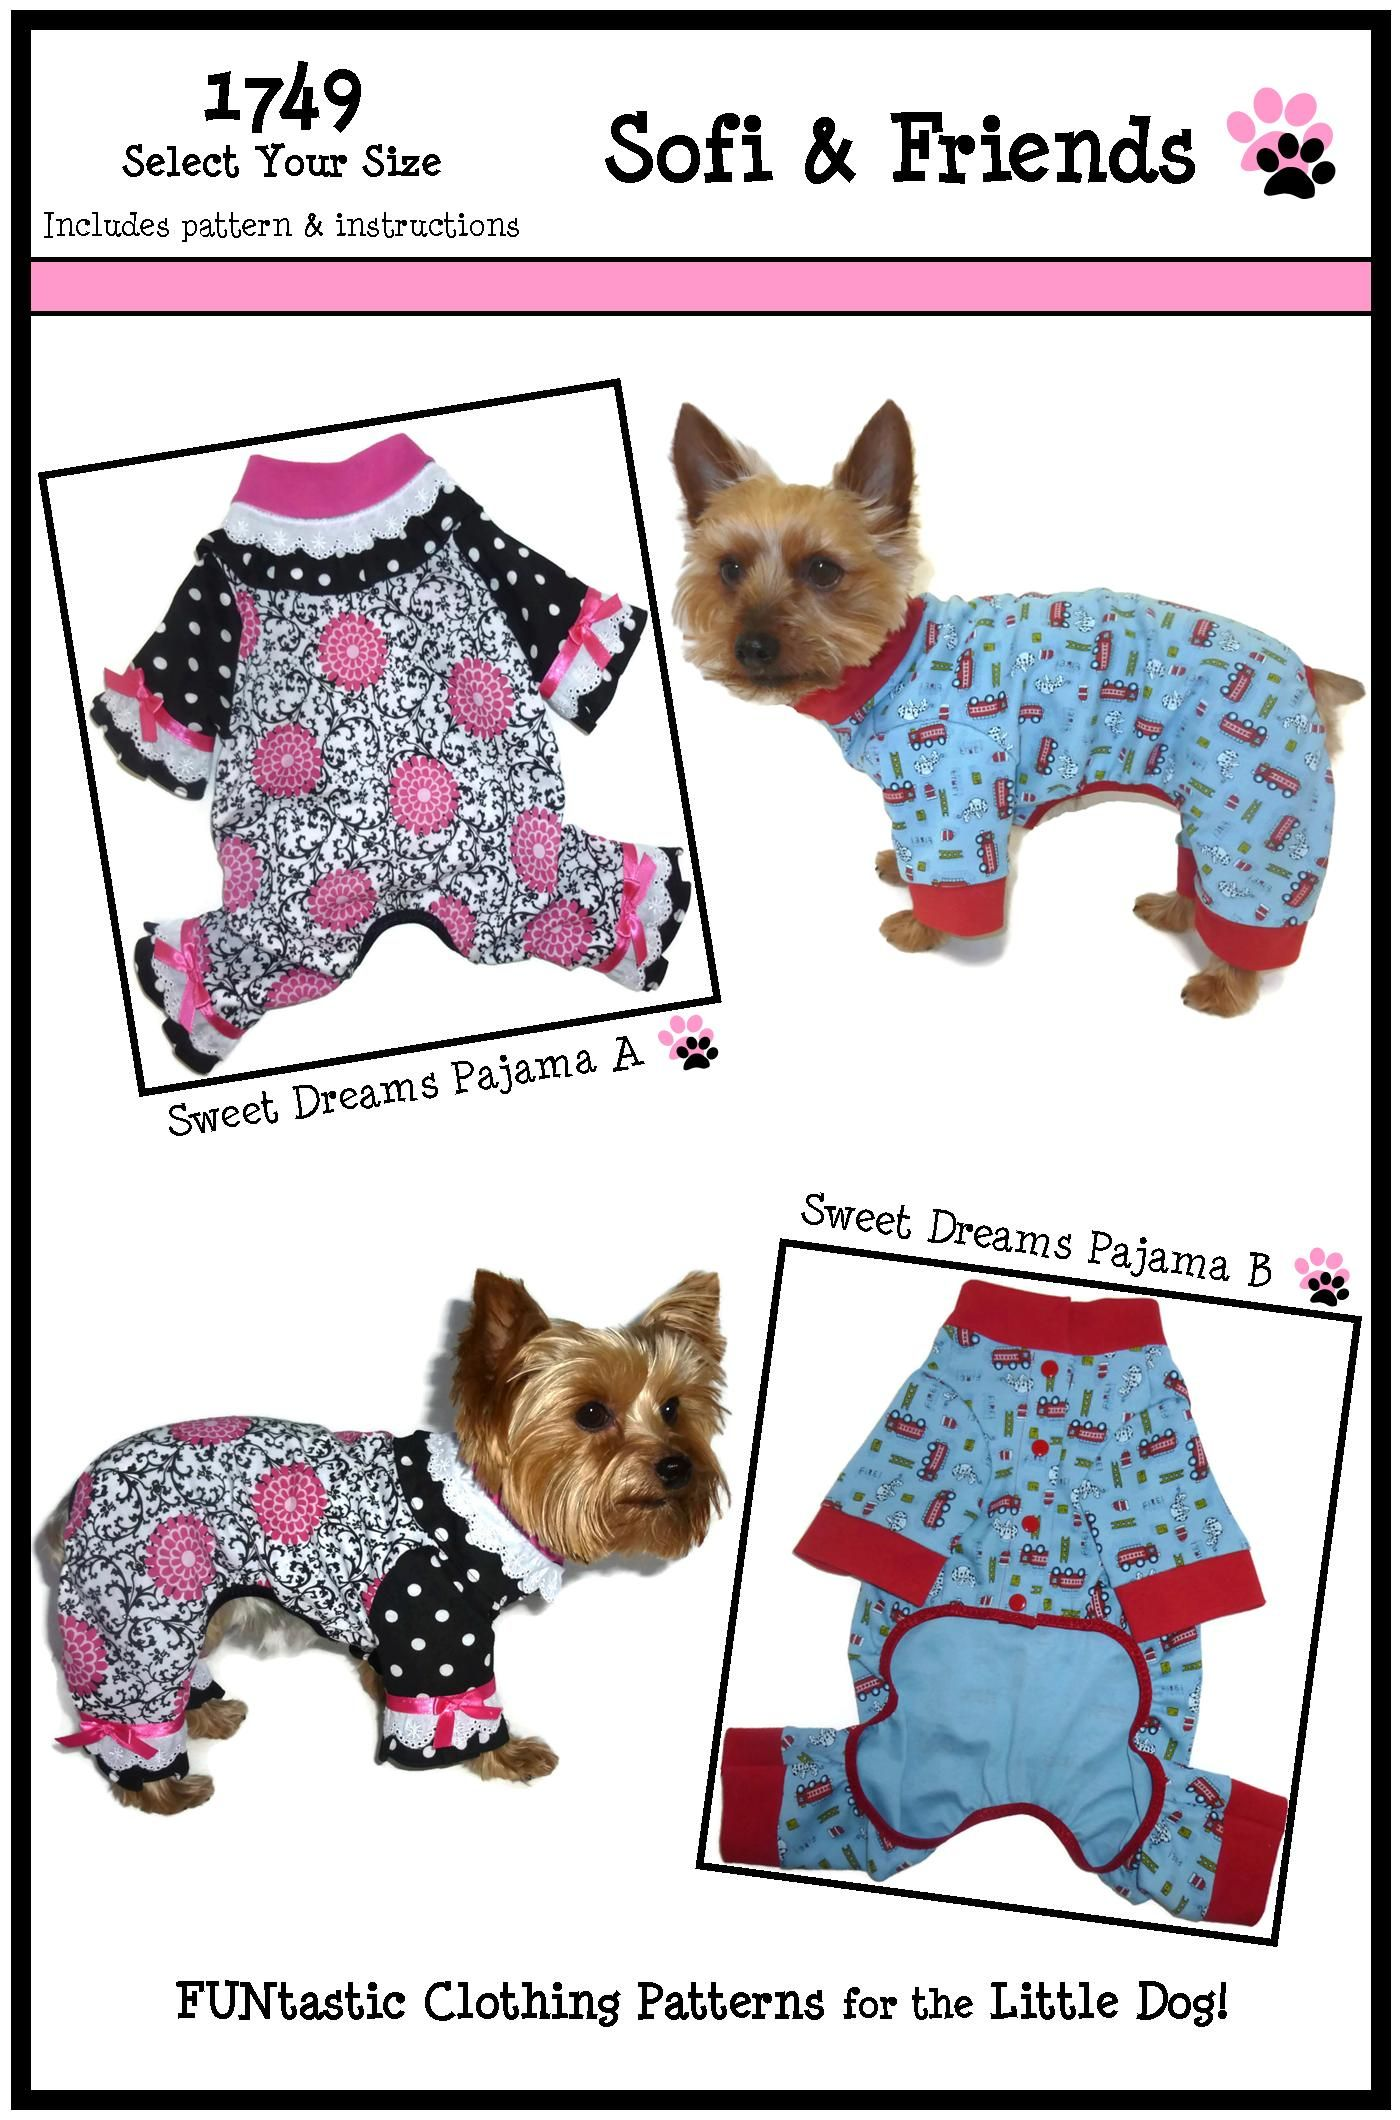 Dog clothes sewing pattern 1749 sweet dreams pajama for the little dog clothes sewing pattern 1749 sweet dreams pajama for the little dog 825 jeuxipadfo Image collections